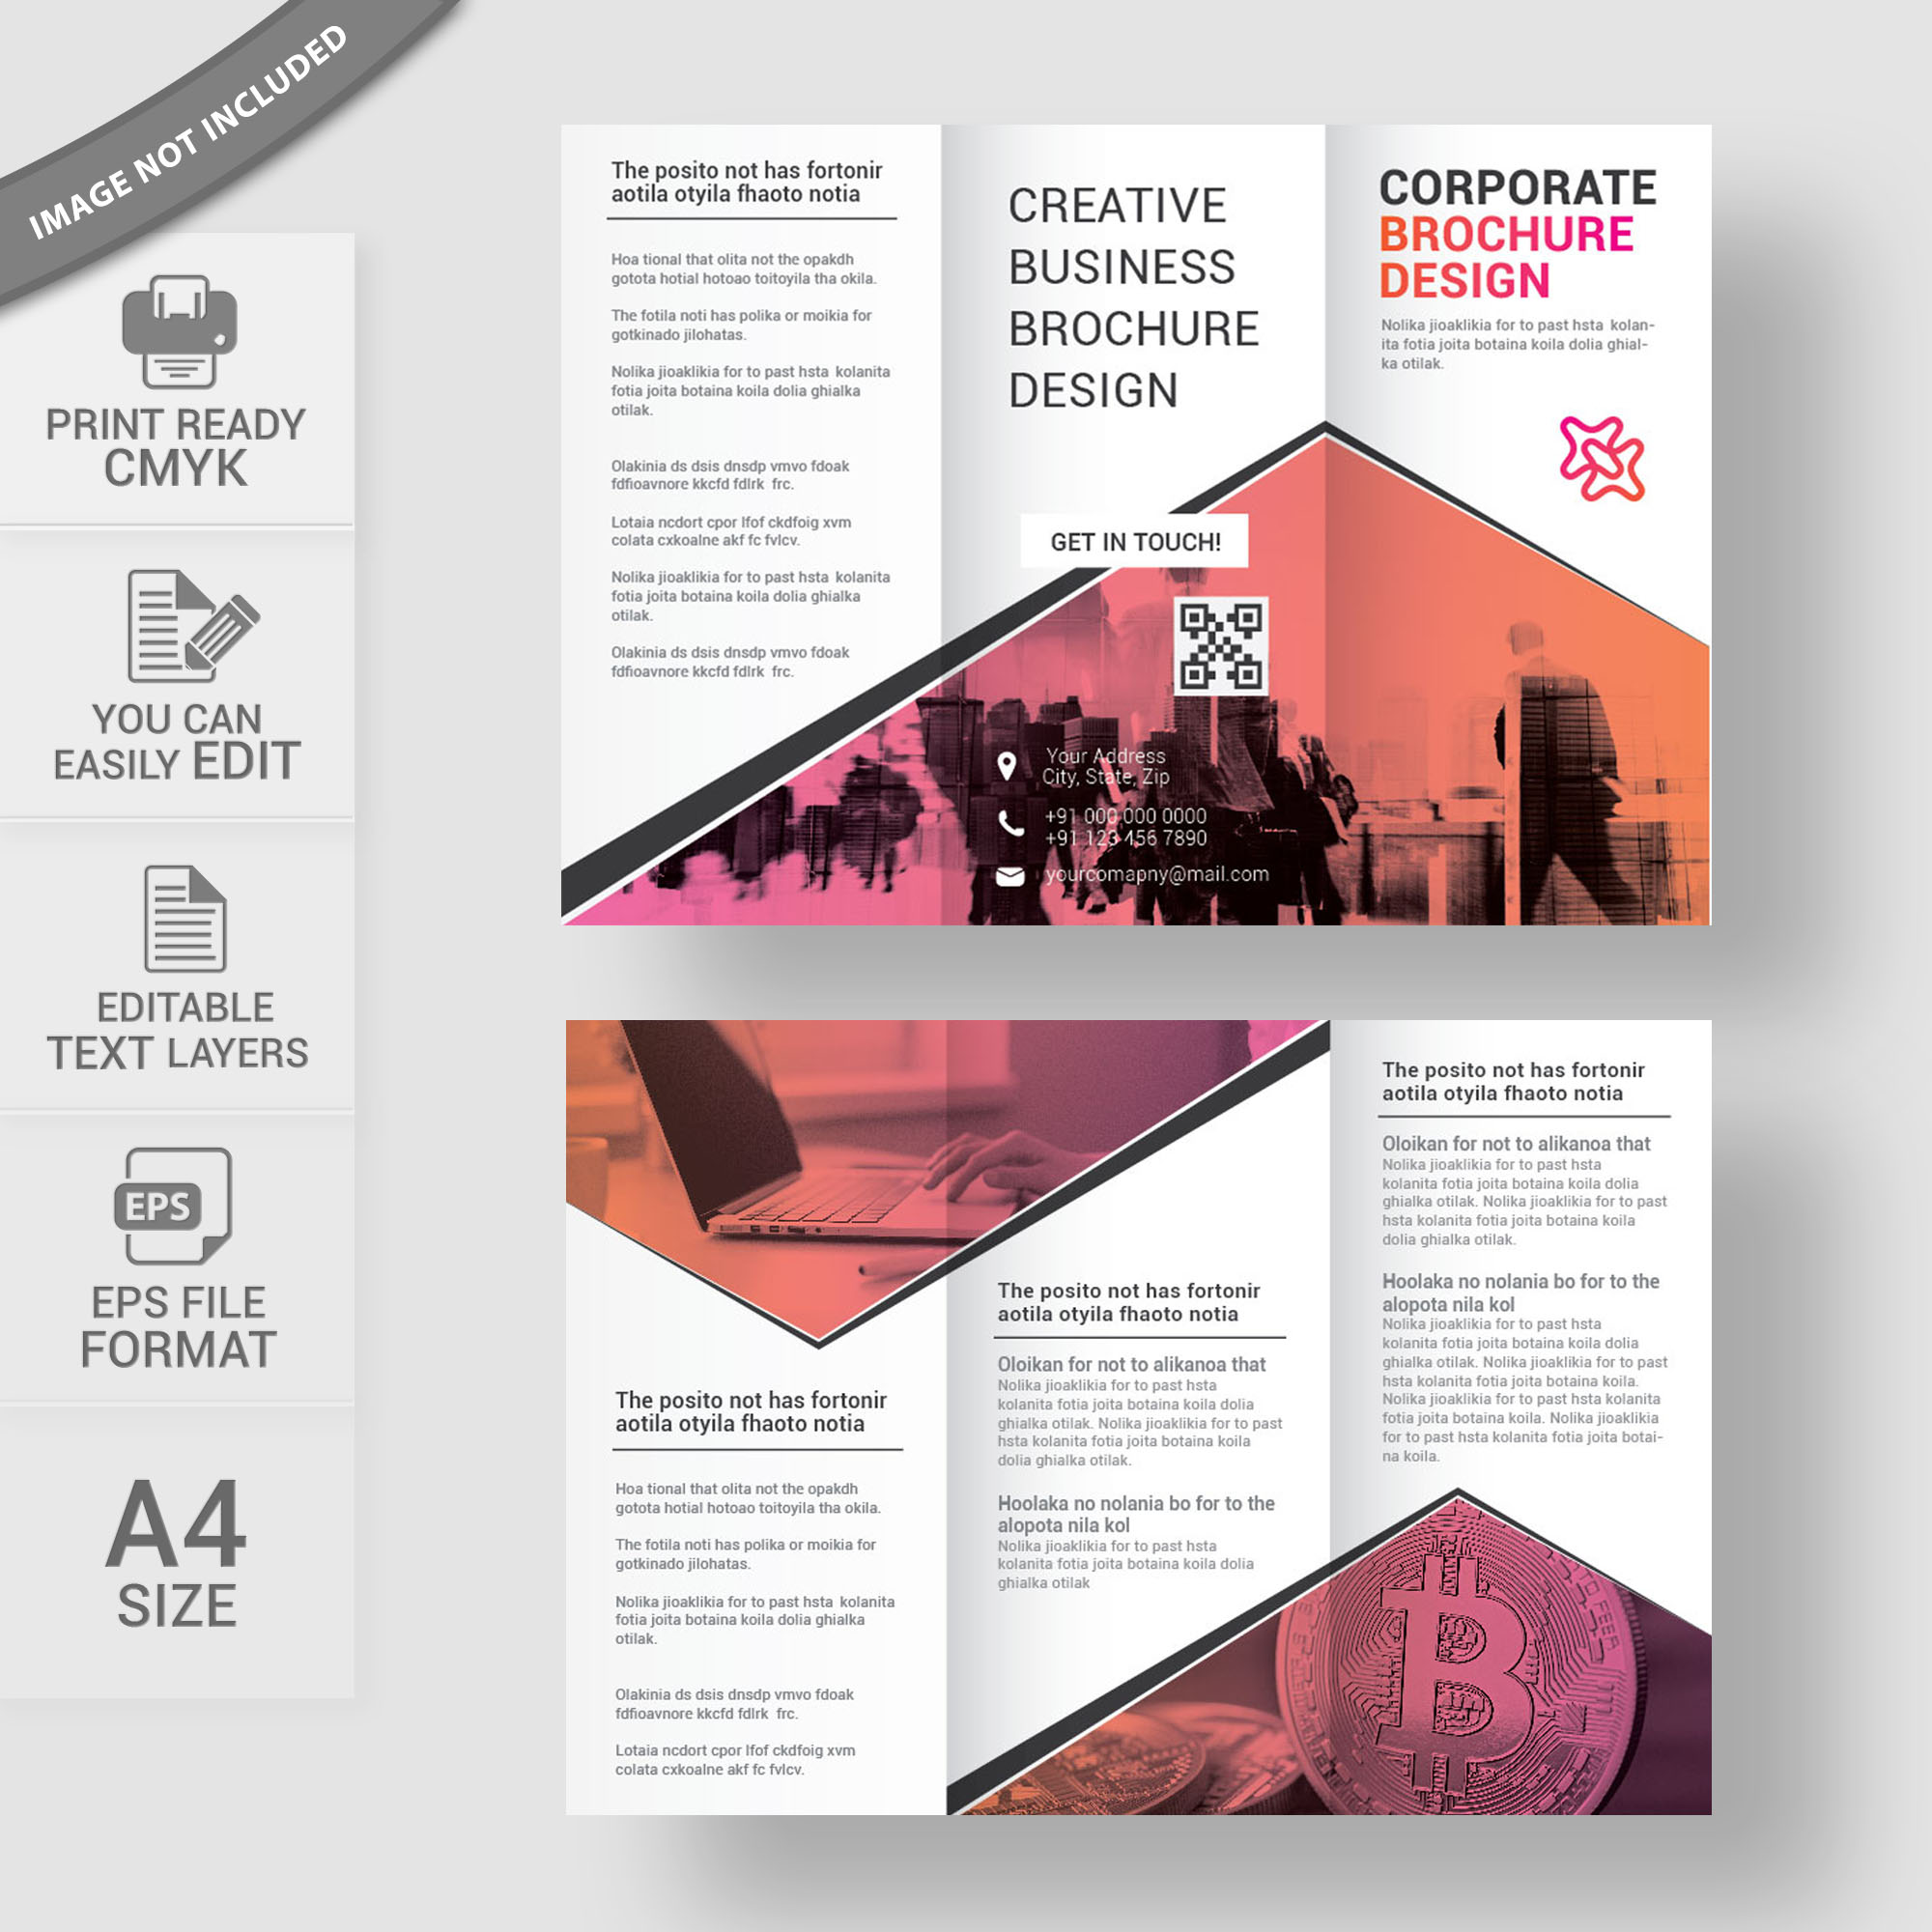 Business Brochure Template Free Download Wisxicom - Business brochures templates free